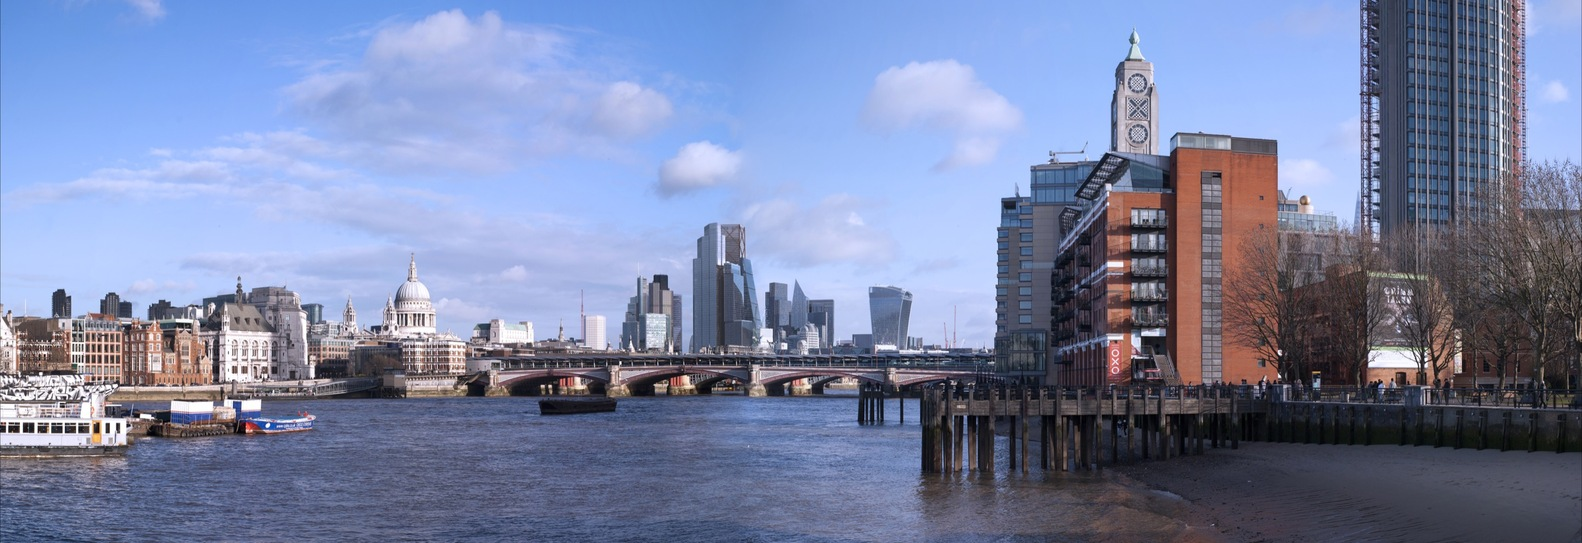 New Visualizations Show How London's Skyline Will Look in 2026,View from South Bank. Image Courtesy of City of London